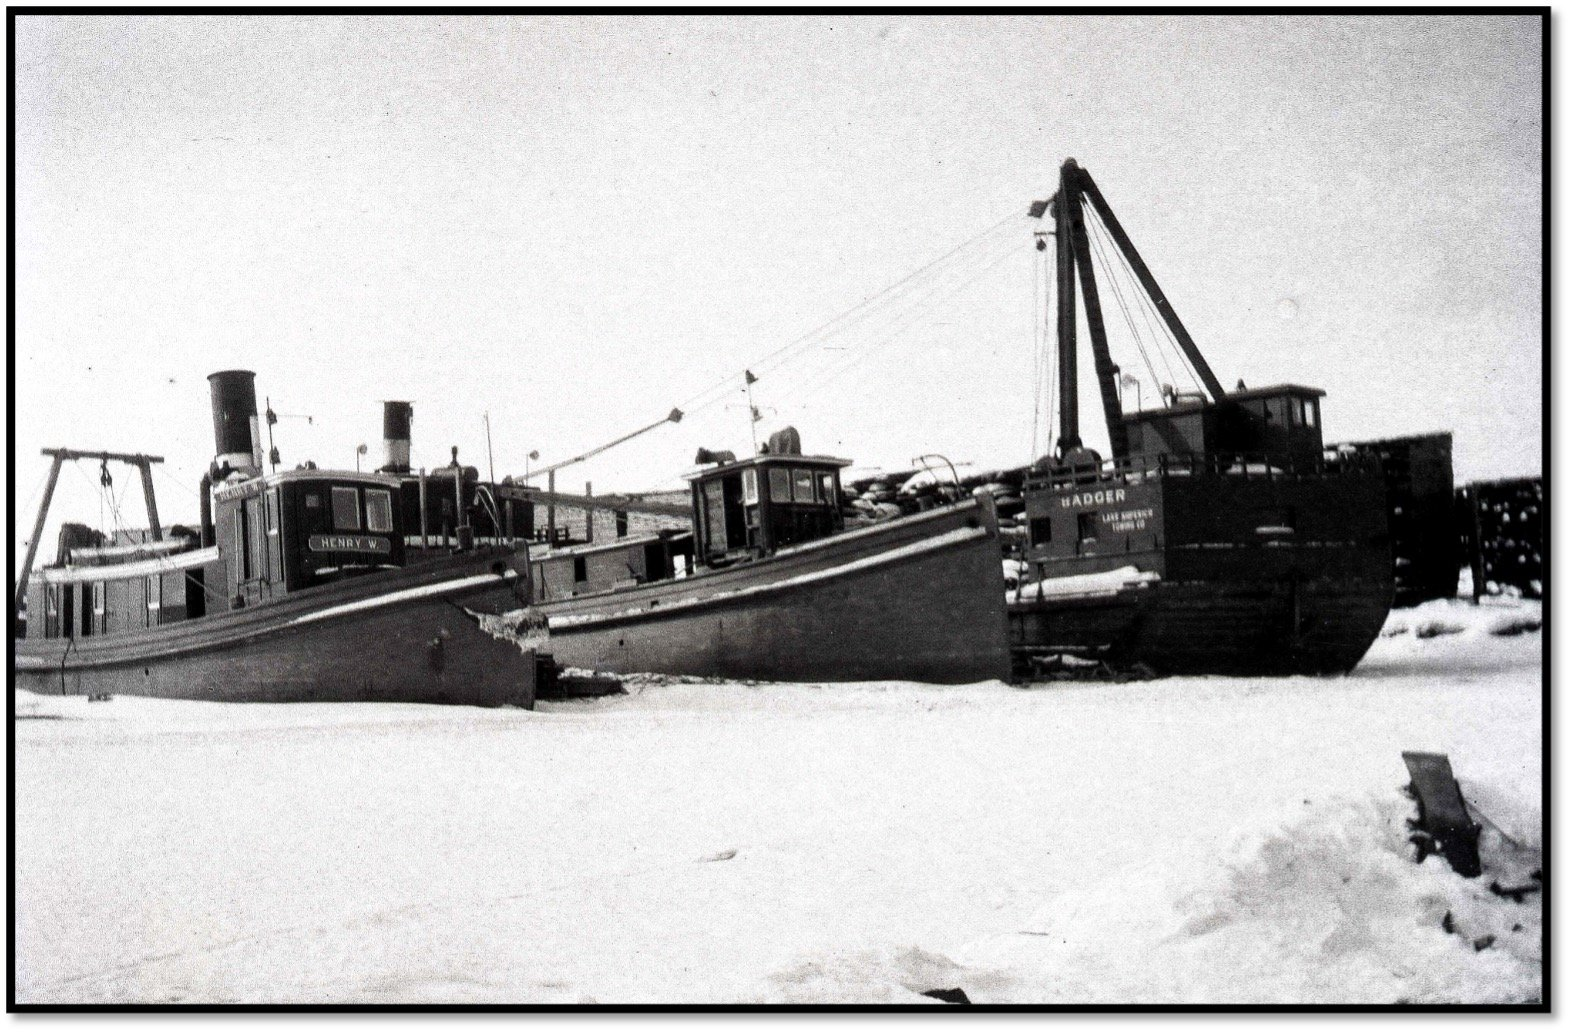 Lake Superior Towing Company Fleet ca 1910 The Bayfield - Henry W and derrick scow Badger